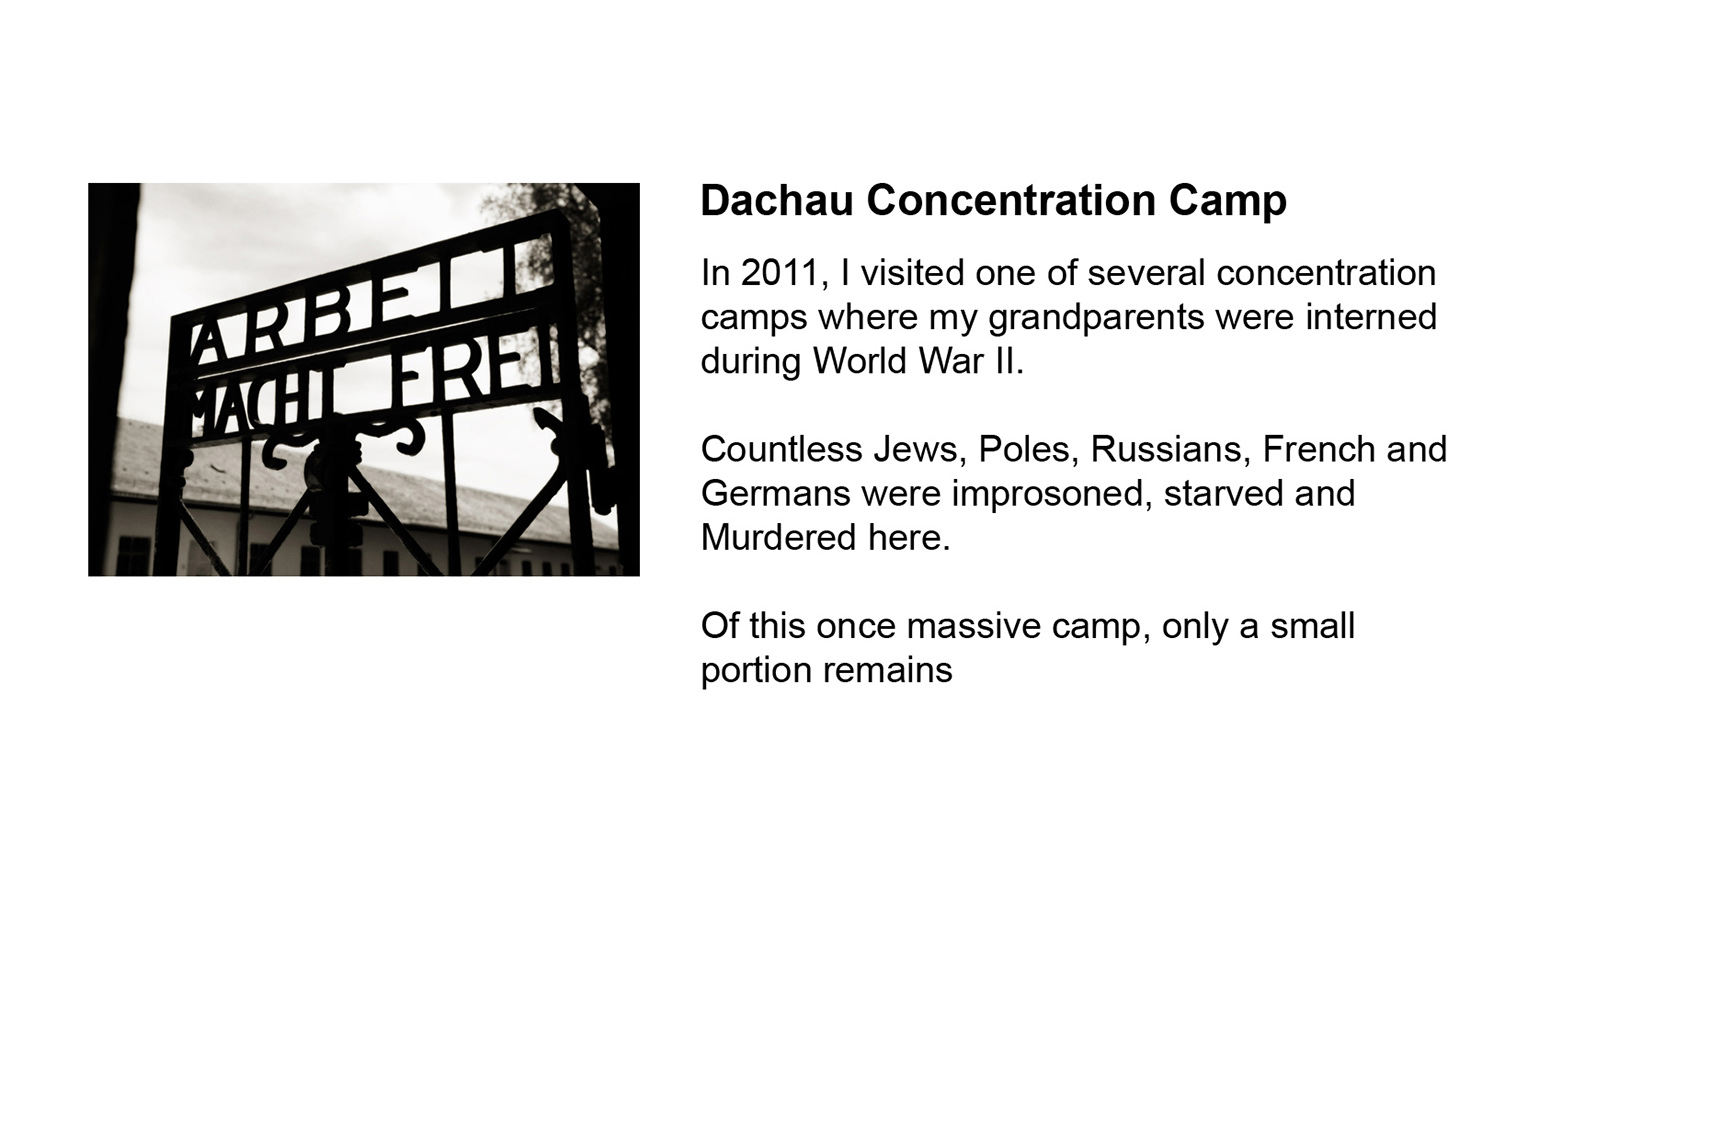 Dachau Concentration Camp | Washington DC Photographer Aaron Clamage